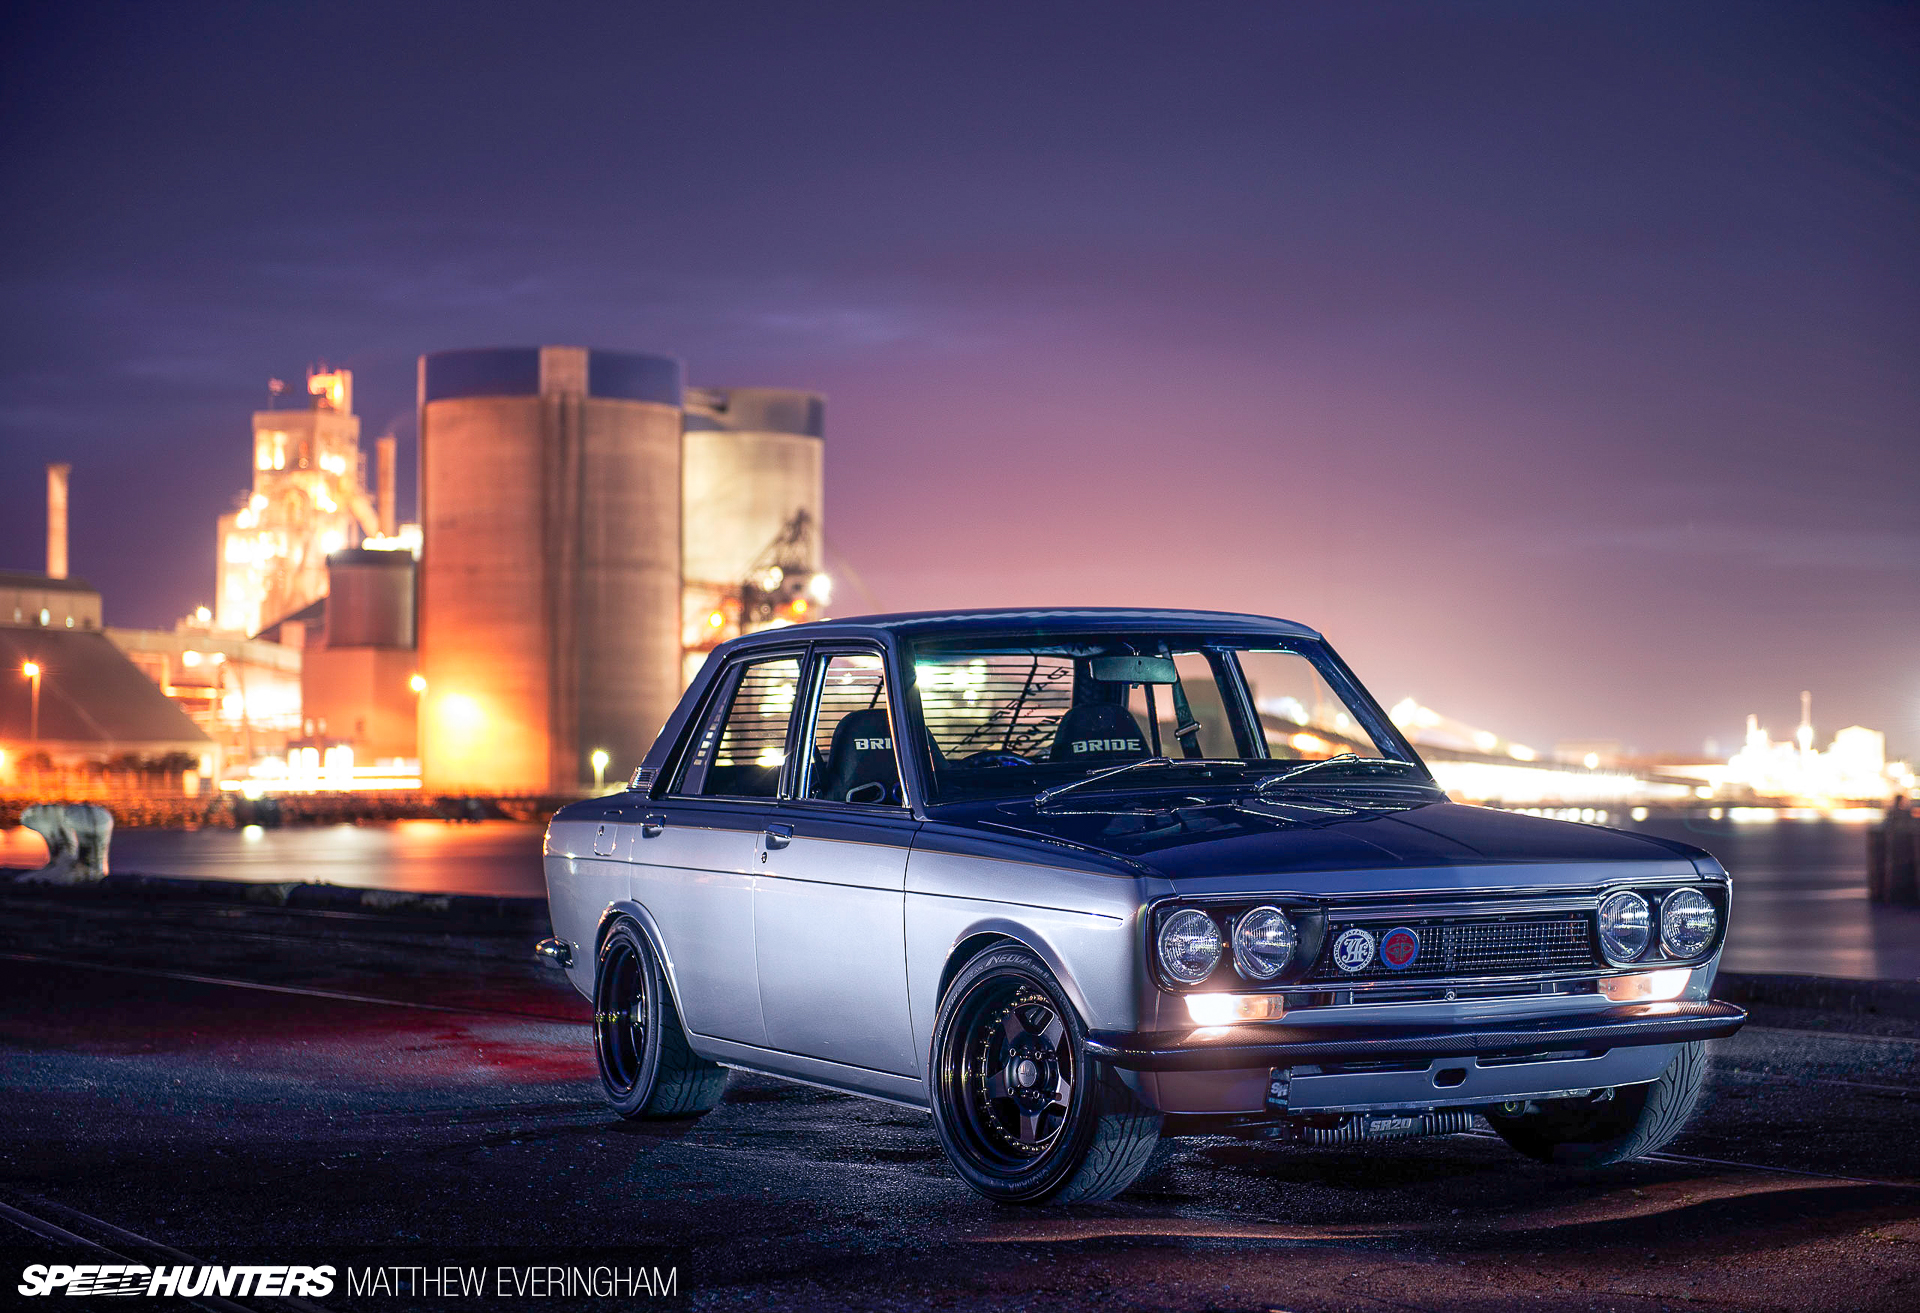 Sleeper Car Wallpaper A Datsun 510 With A Difference Speedhunters